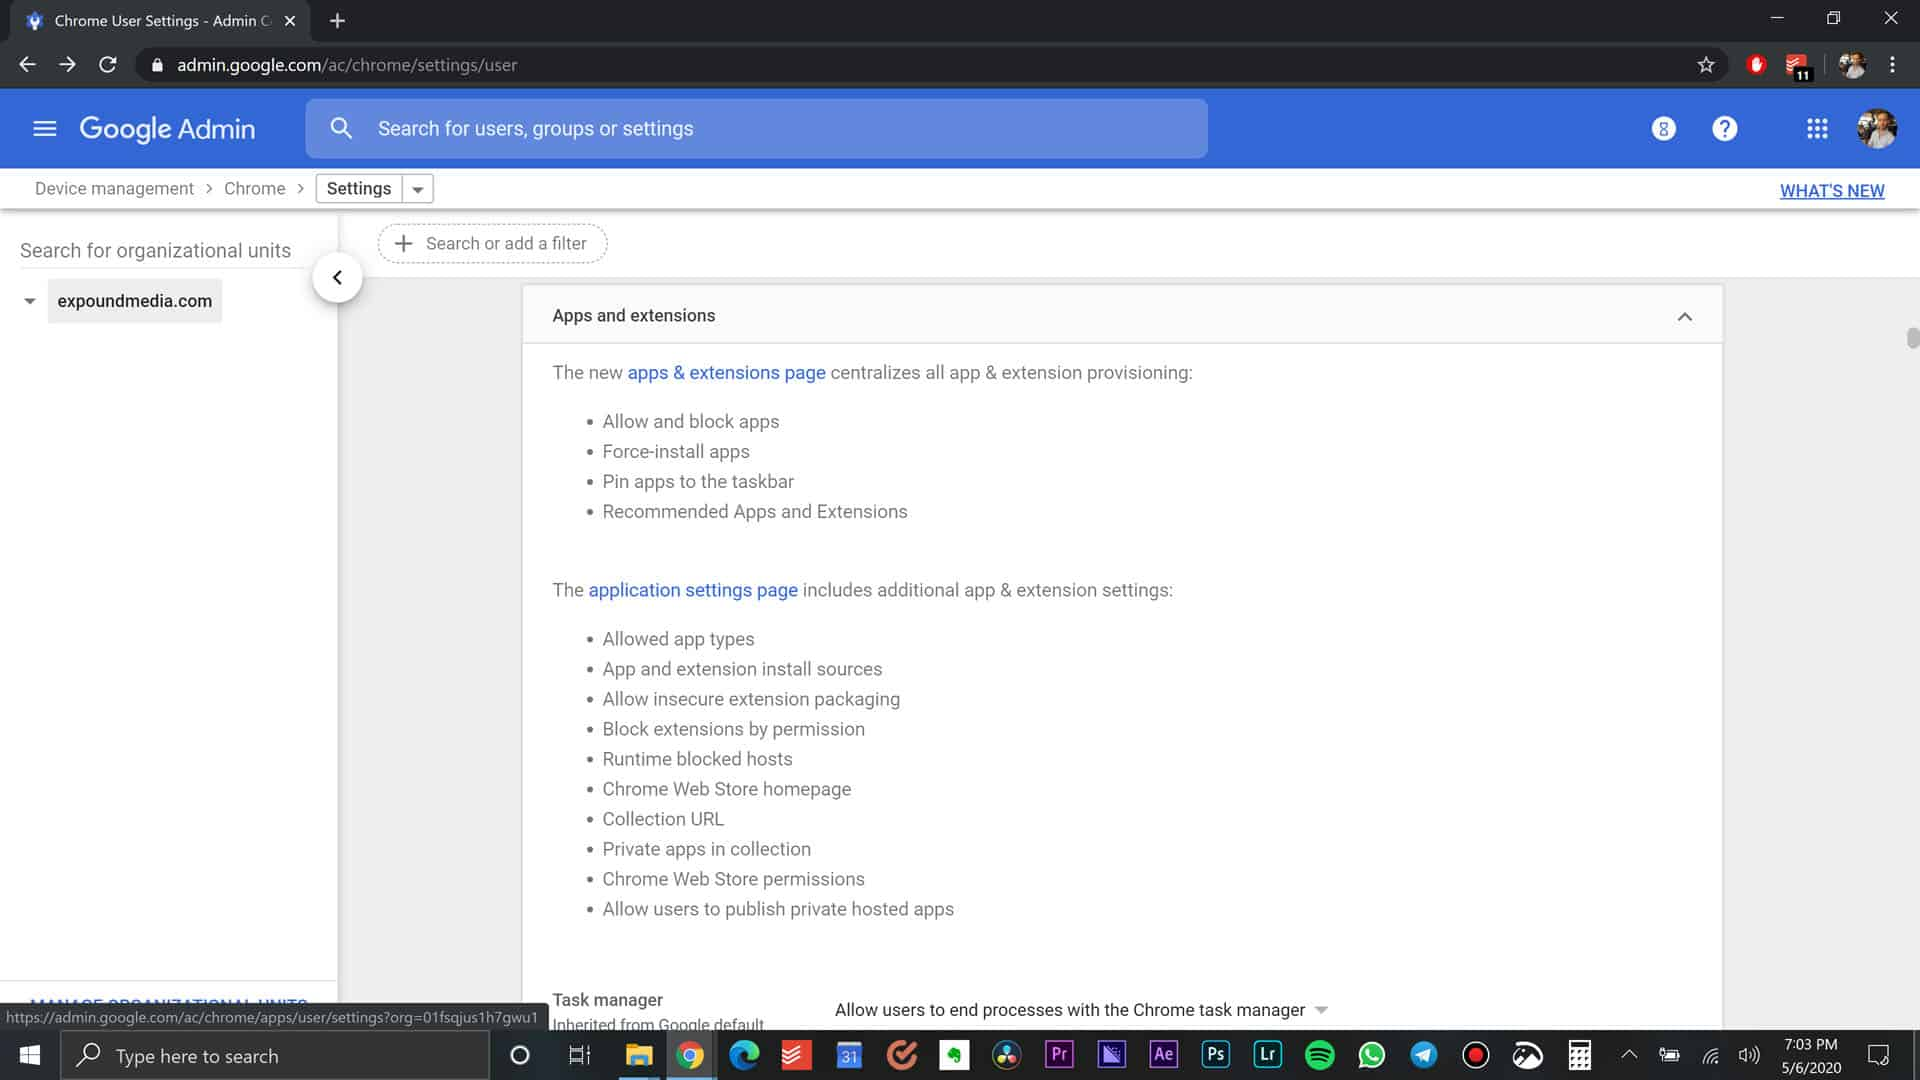 Application Settings Page